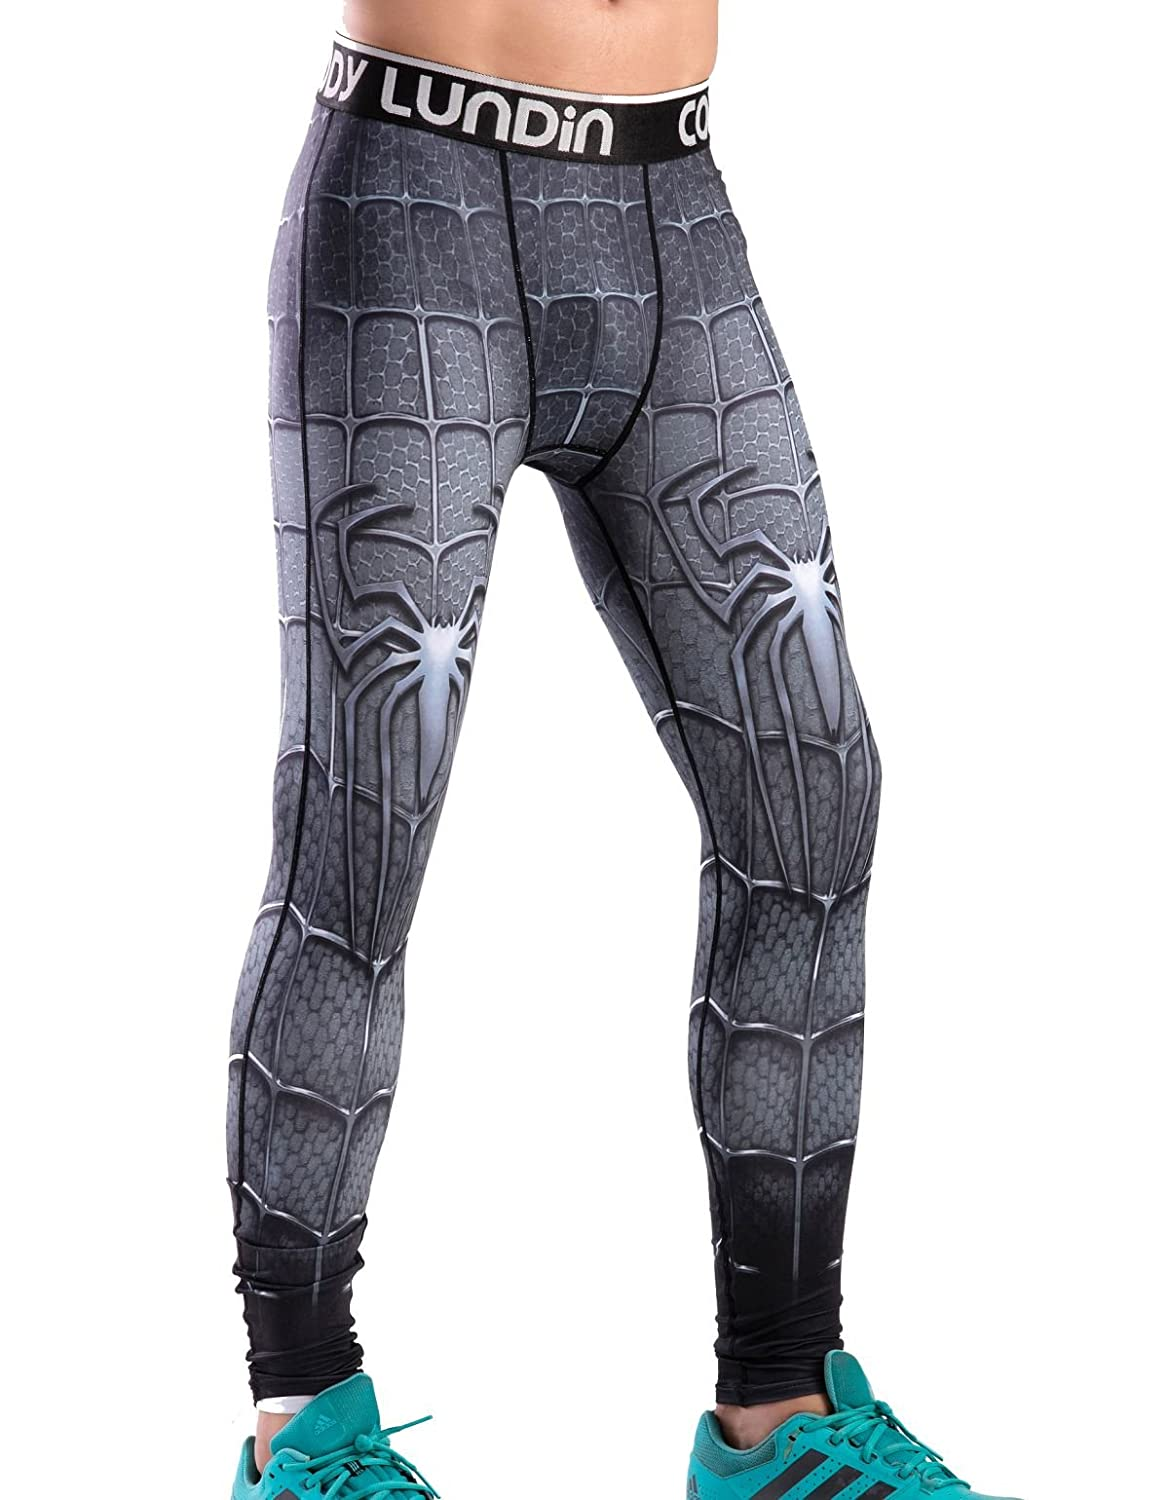 Red Plume Mens Compression Elastic Tight Leggings Sport Spider Printing Pants